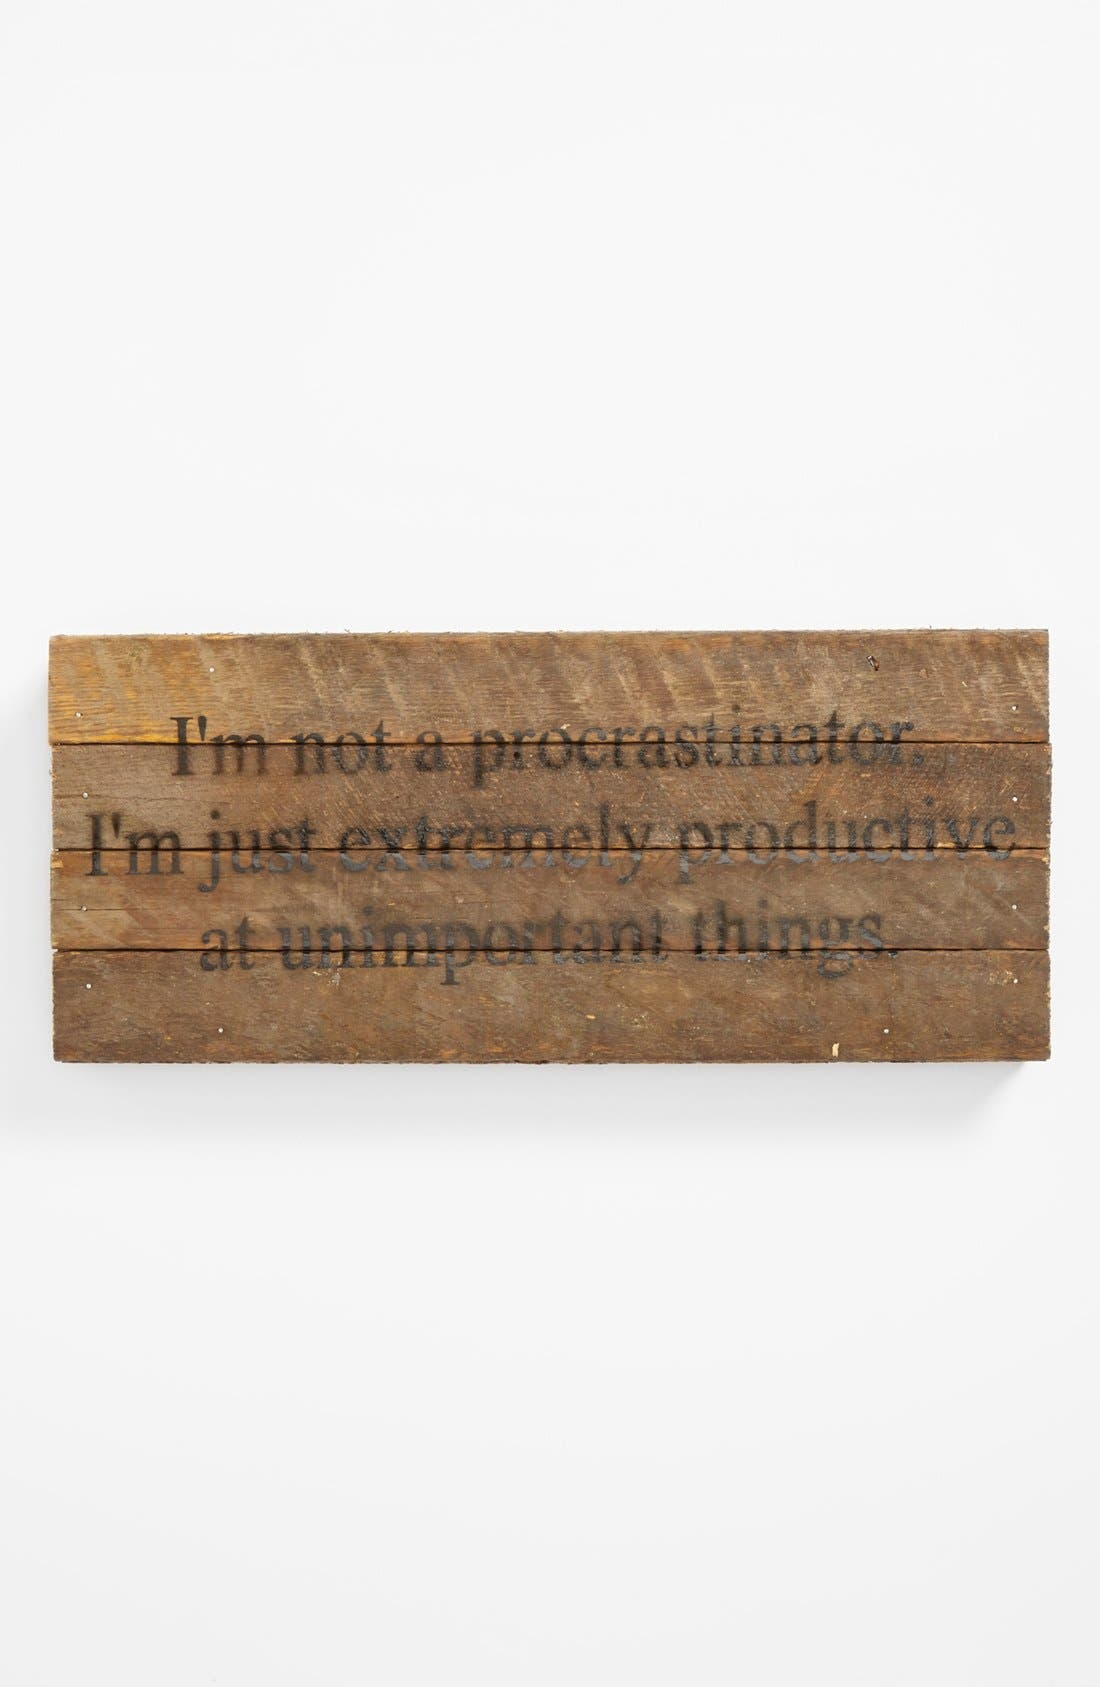 Alternate Image 1 Selected - 'I'm not a Procrastinator' Wood Wall Plaque